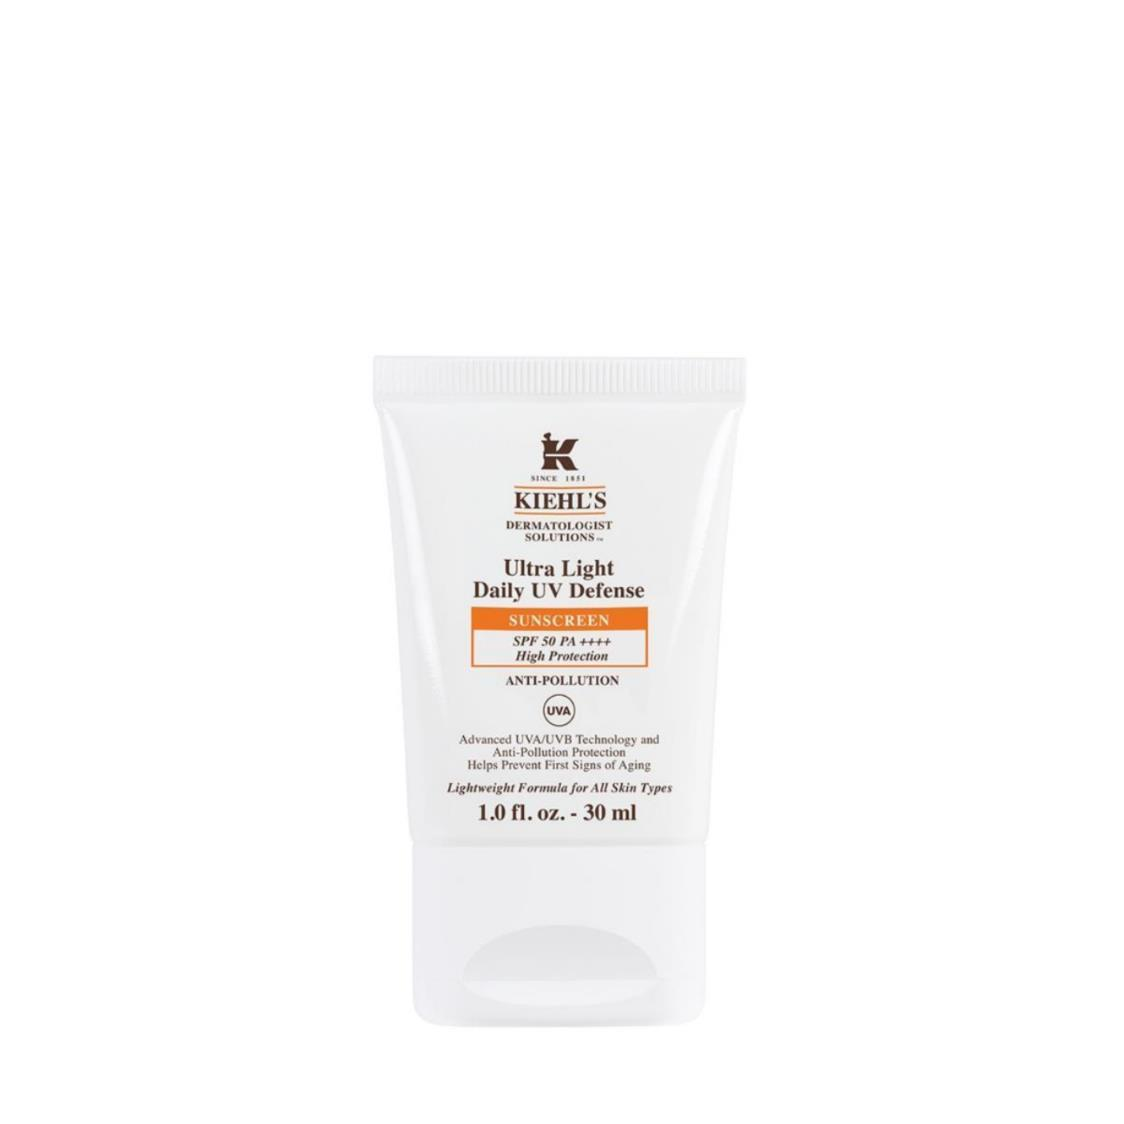 Ultra Light Daily UV Defense SPF 50 PA 30ml